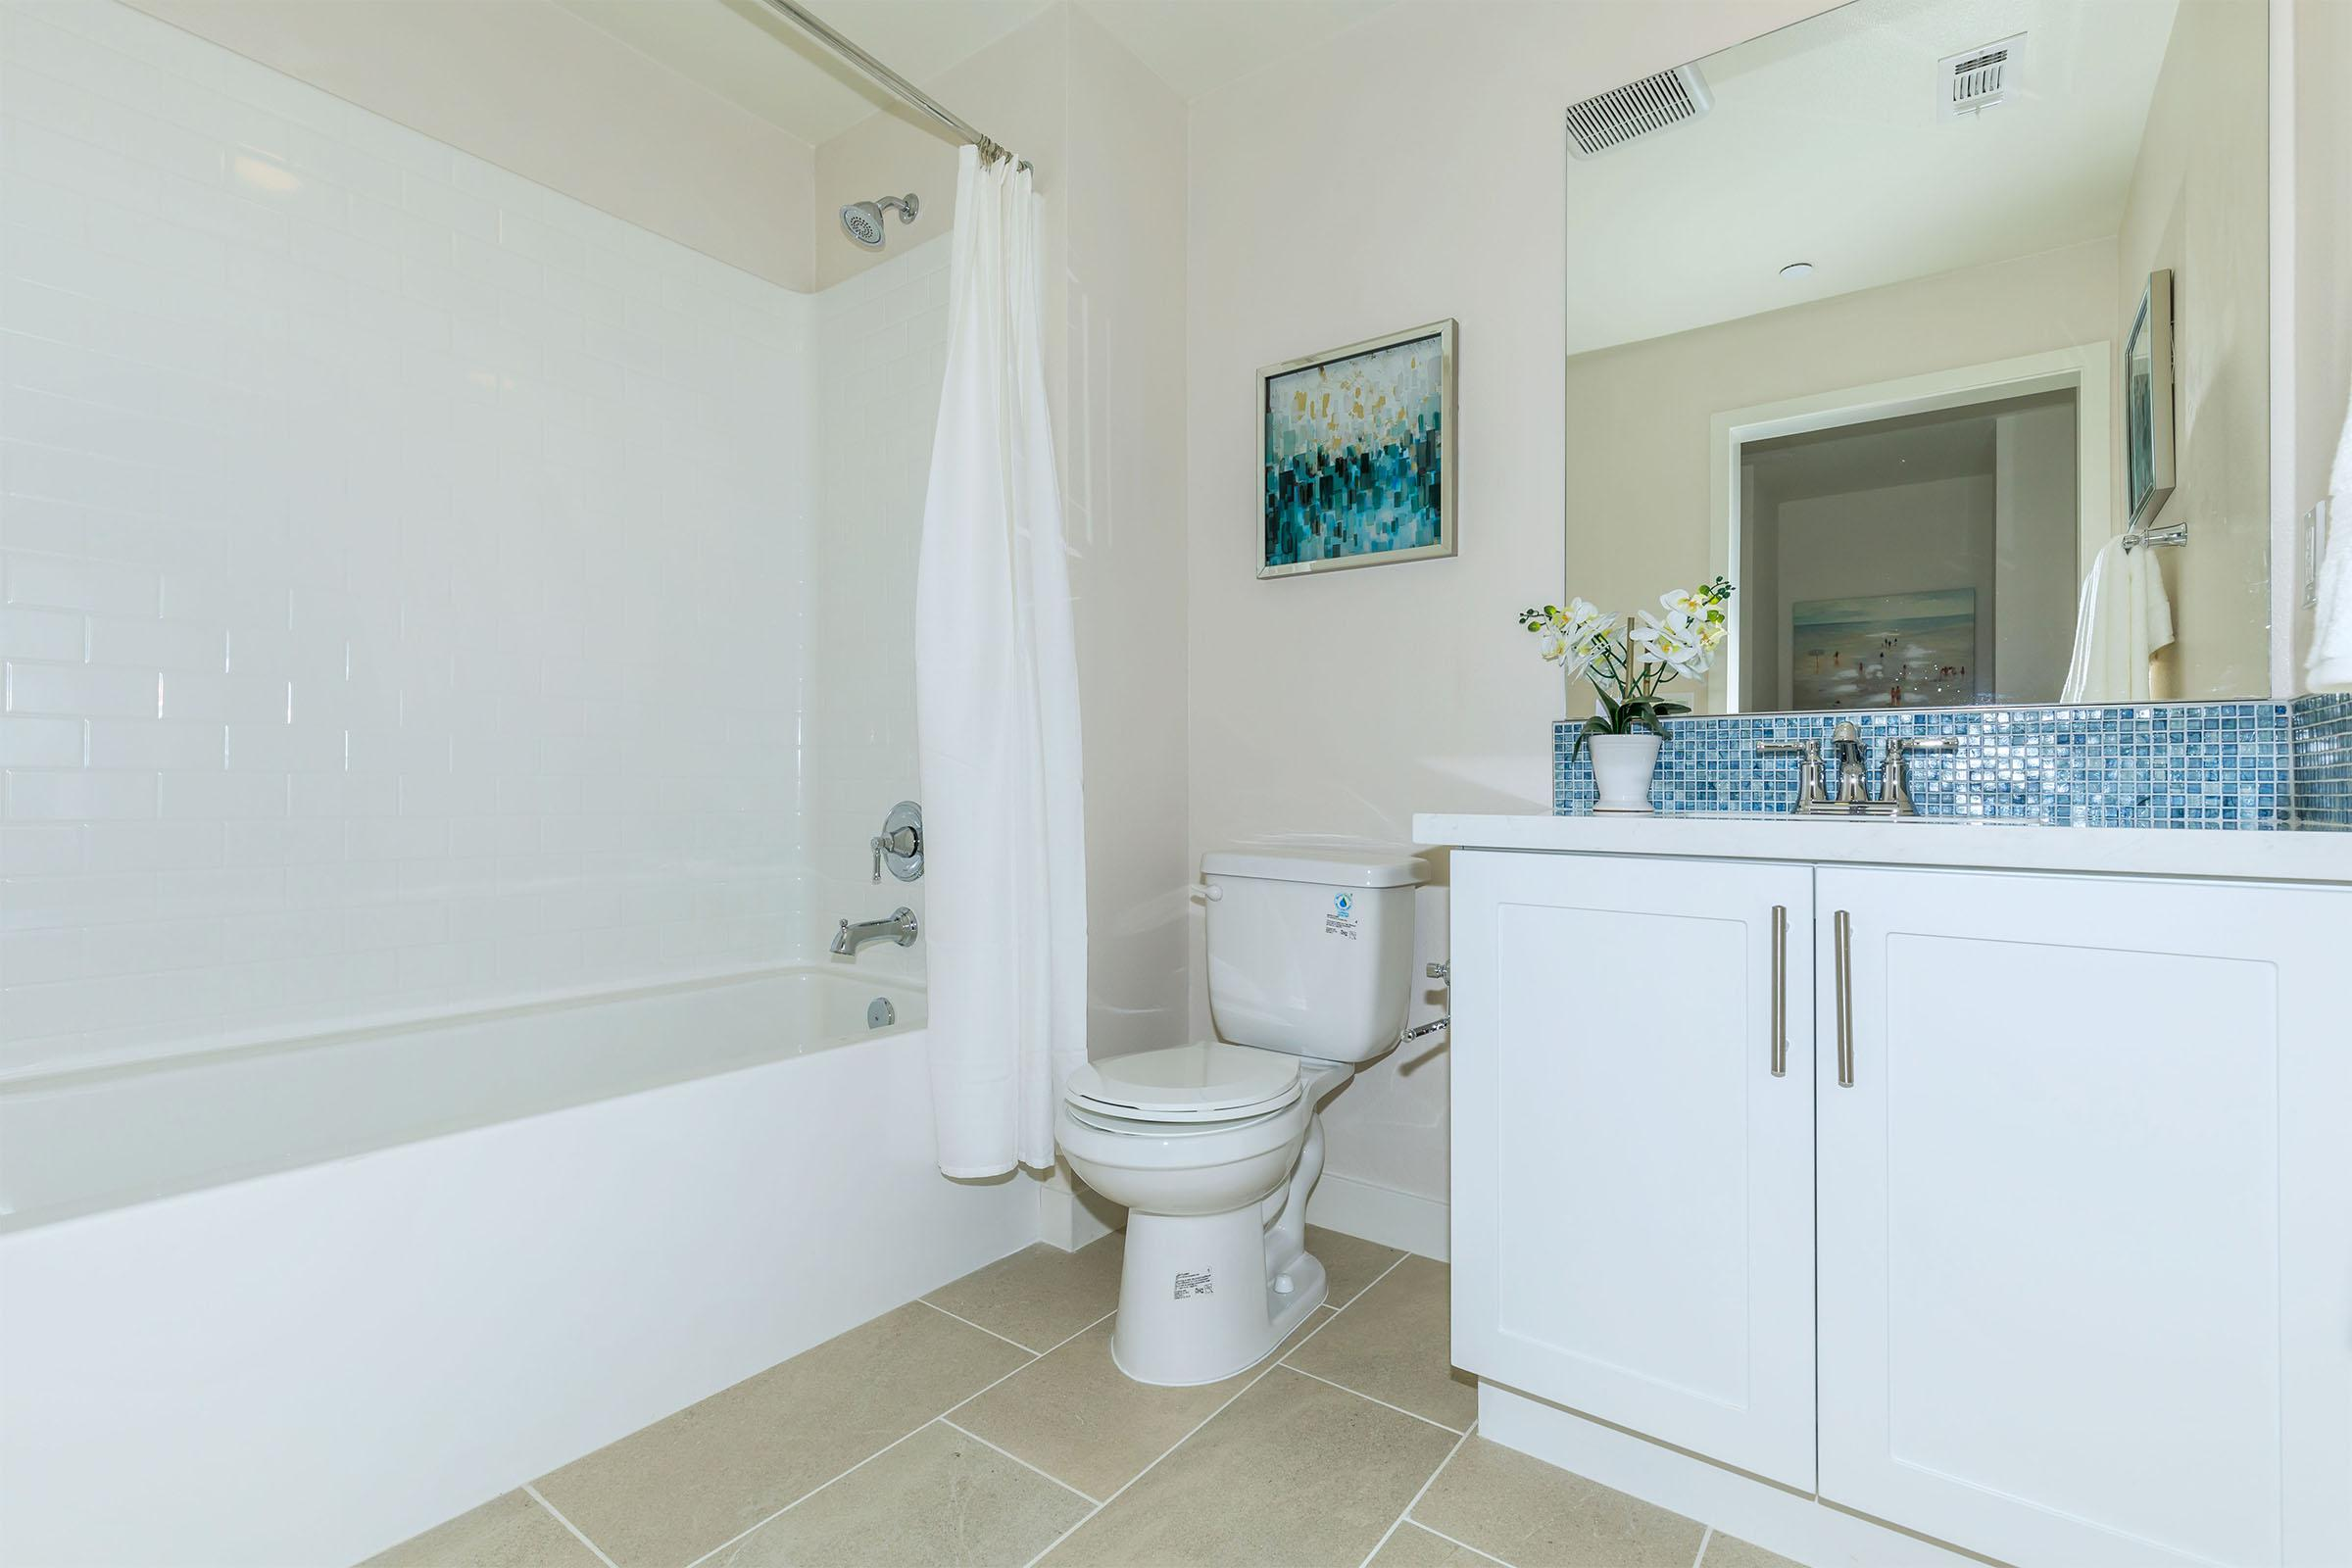 a large white tub next to a sink